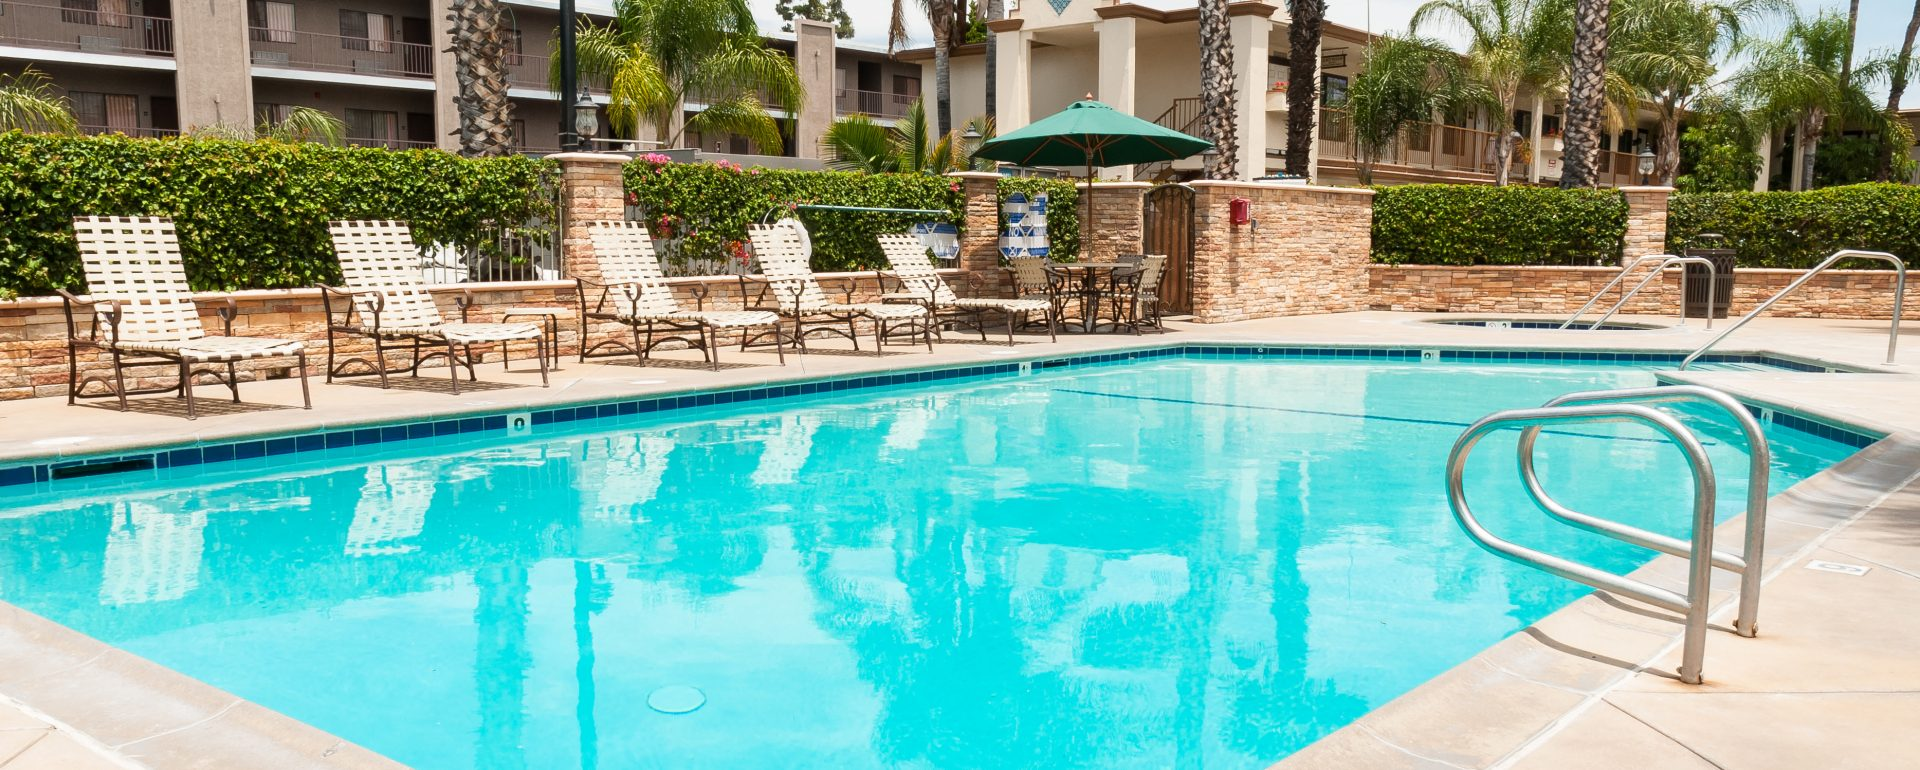 outdoor pool at Park Vue Inn located in Anaheim